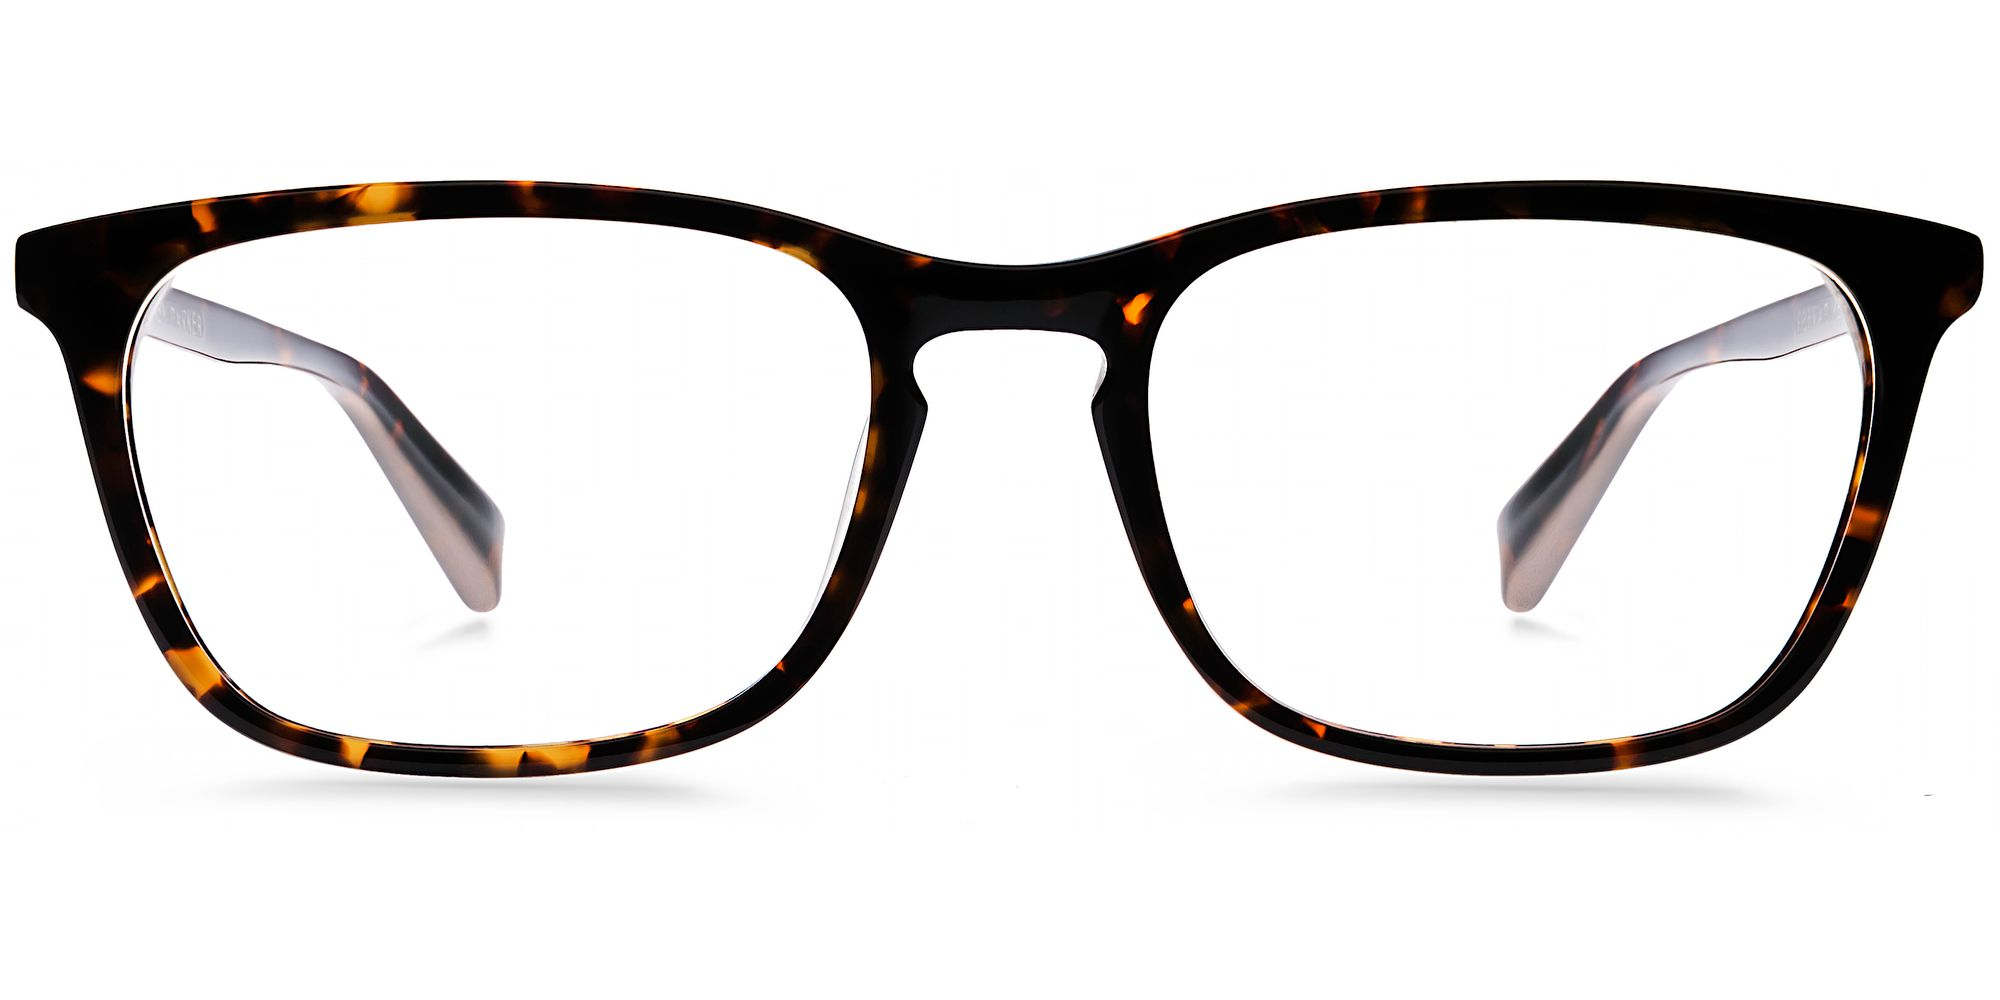 Warby Parker Welty Eyeglasses in Whiskey Tortoise for Women